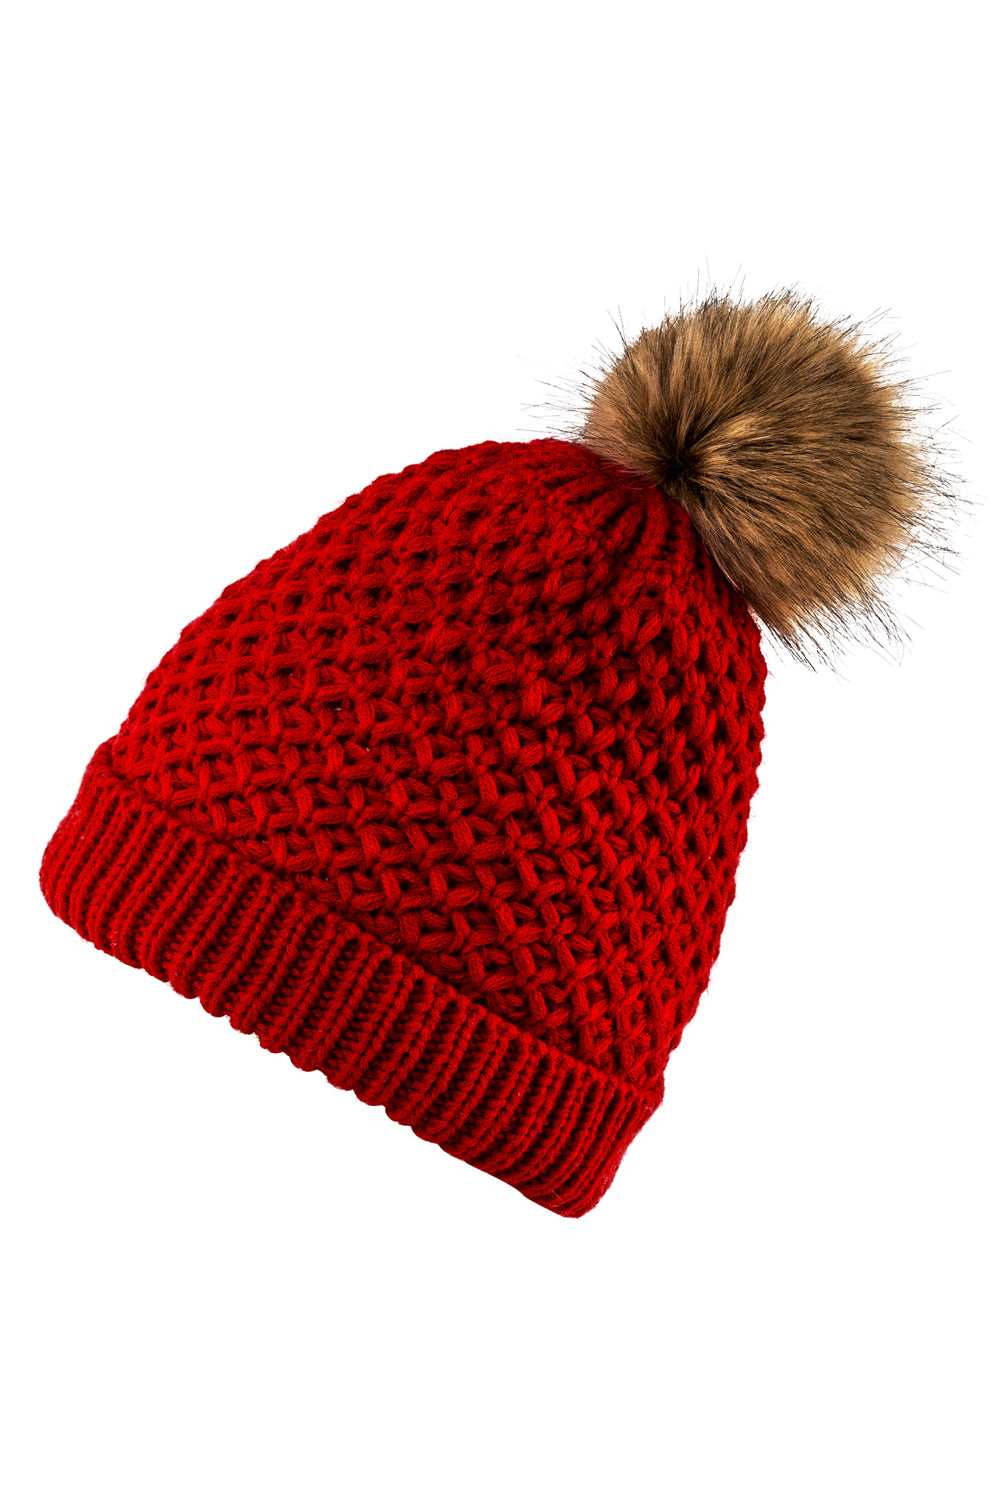 Red knit hat by Just Cozy.